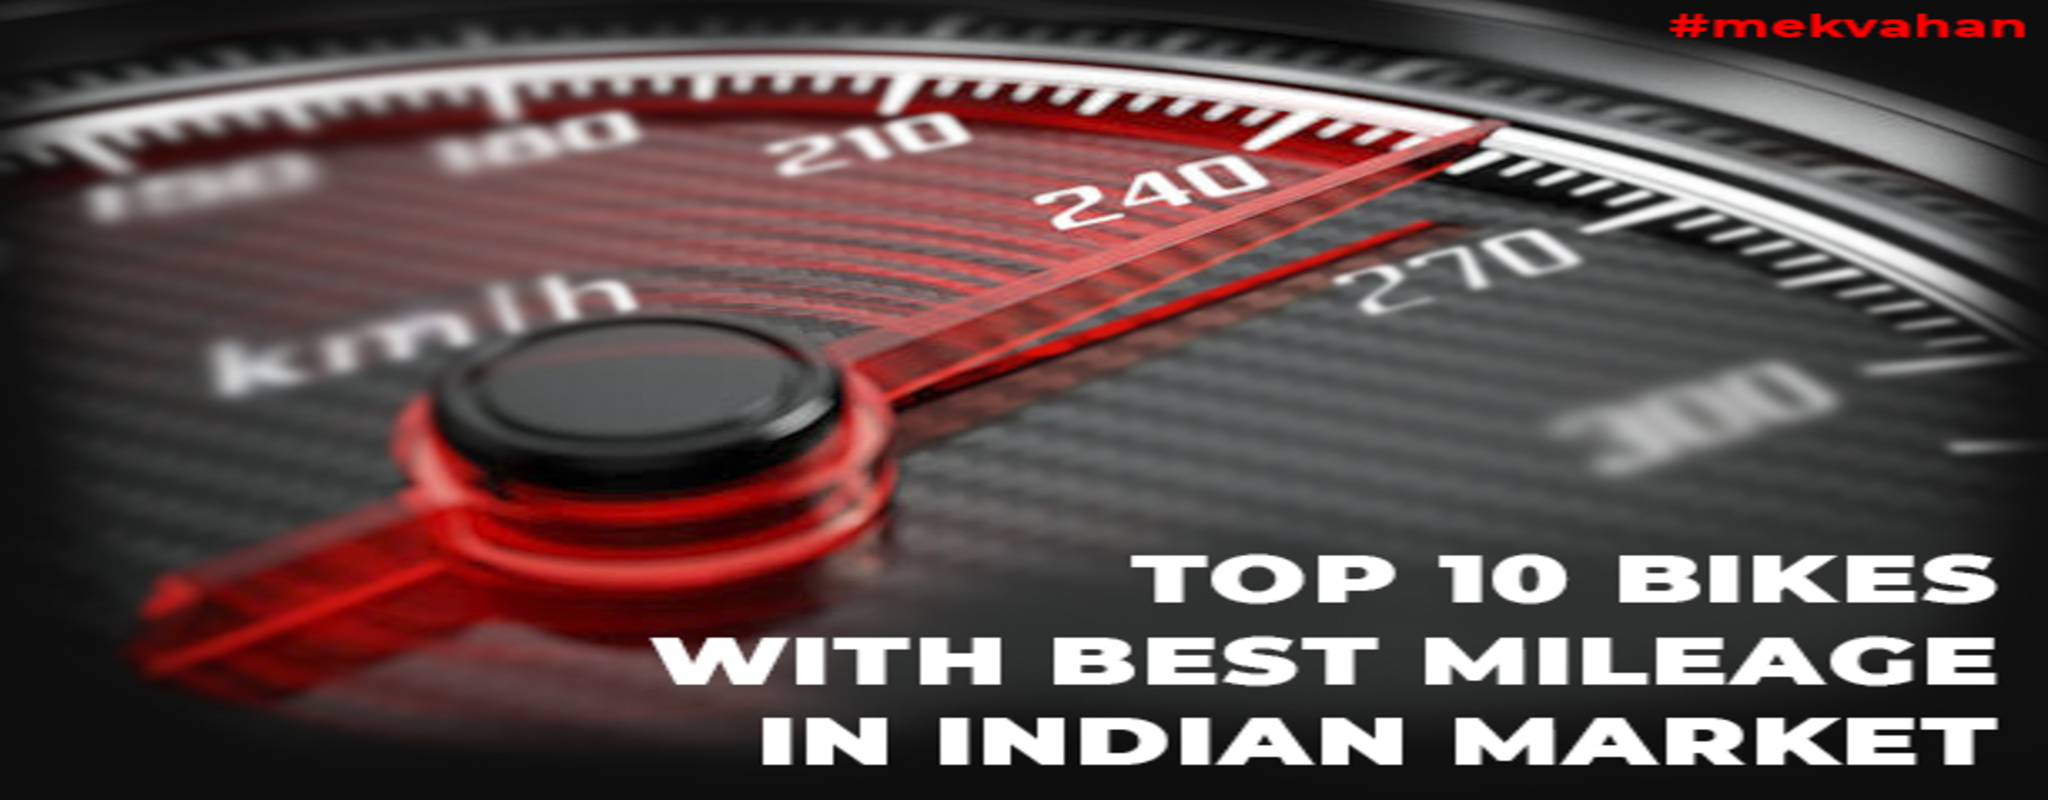 Top 10 bikes with best mileage in Indian market (1)